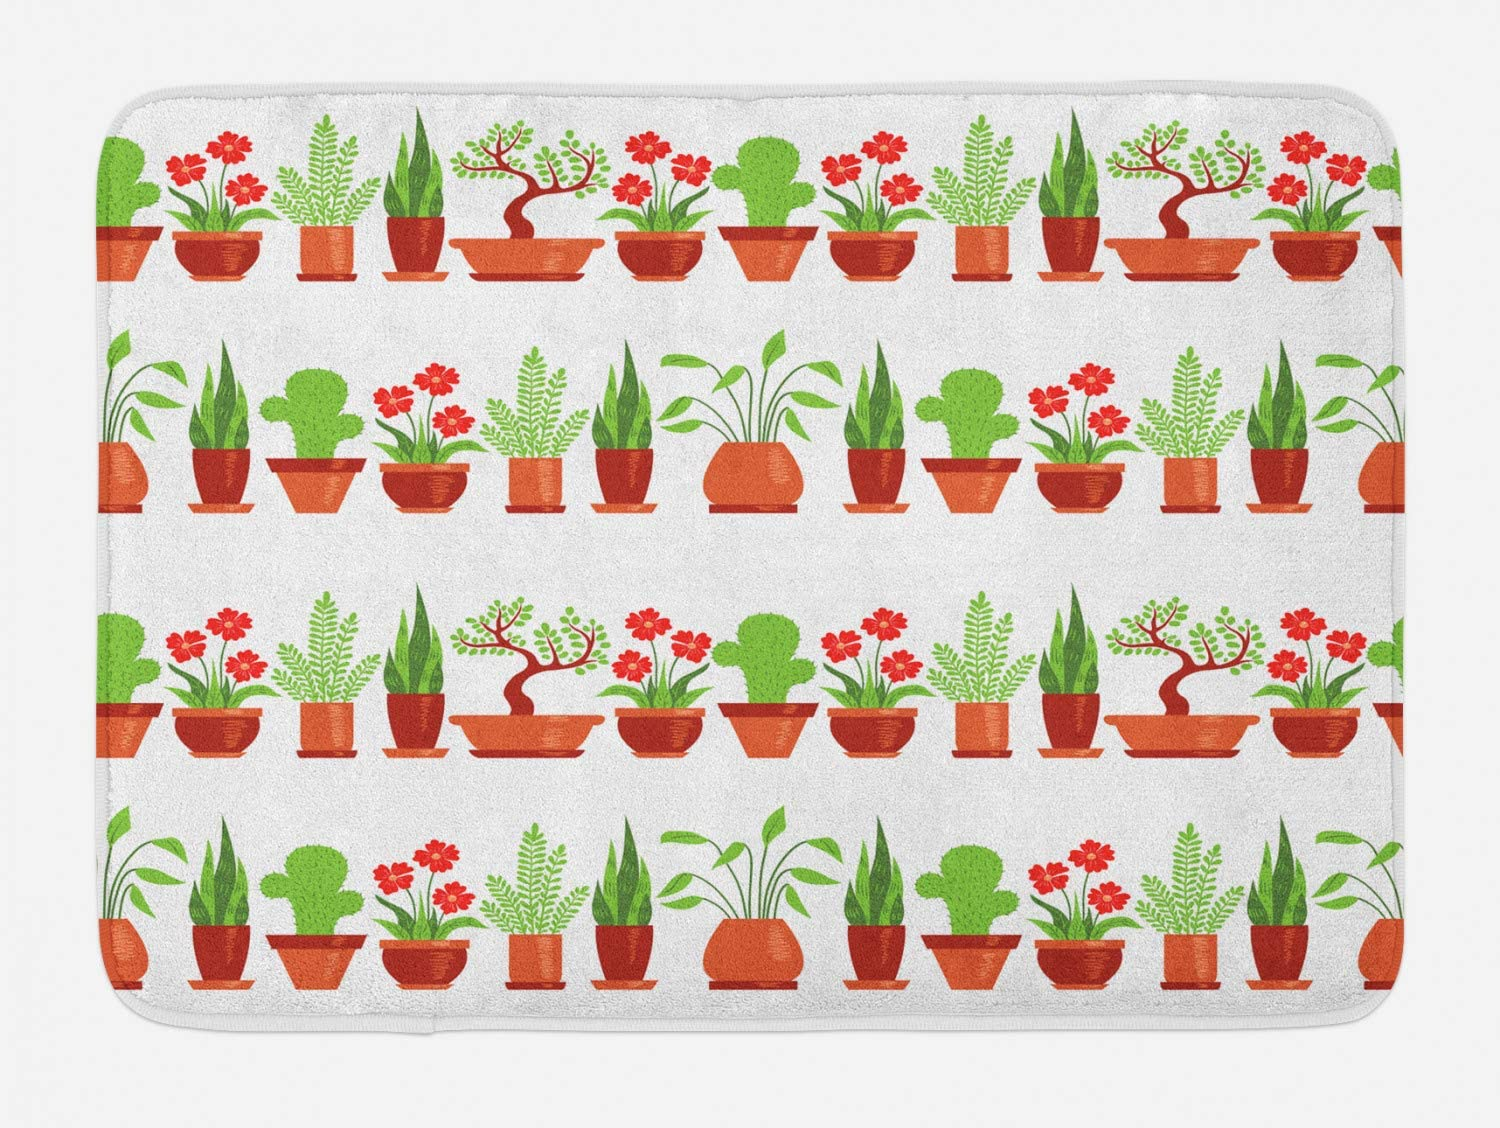 Lunarable Potted Cacti Bath Mat, Rhythmic Pattern of Home Plants and Succulents on Plain Backdrop, Plush Bathroom Decor Mat with Non Slip Backing, 29.5